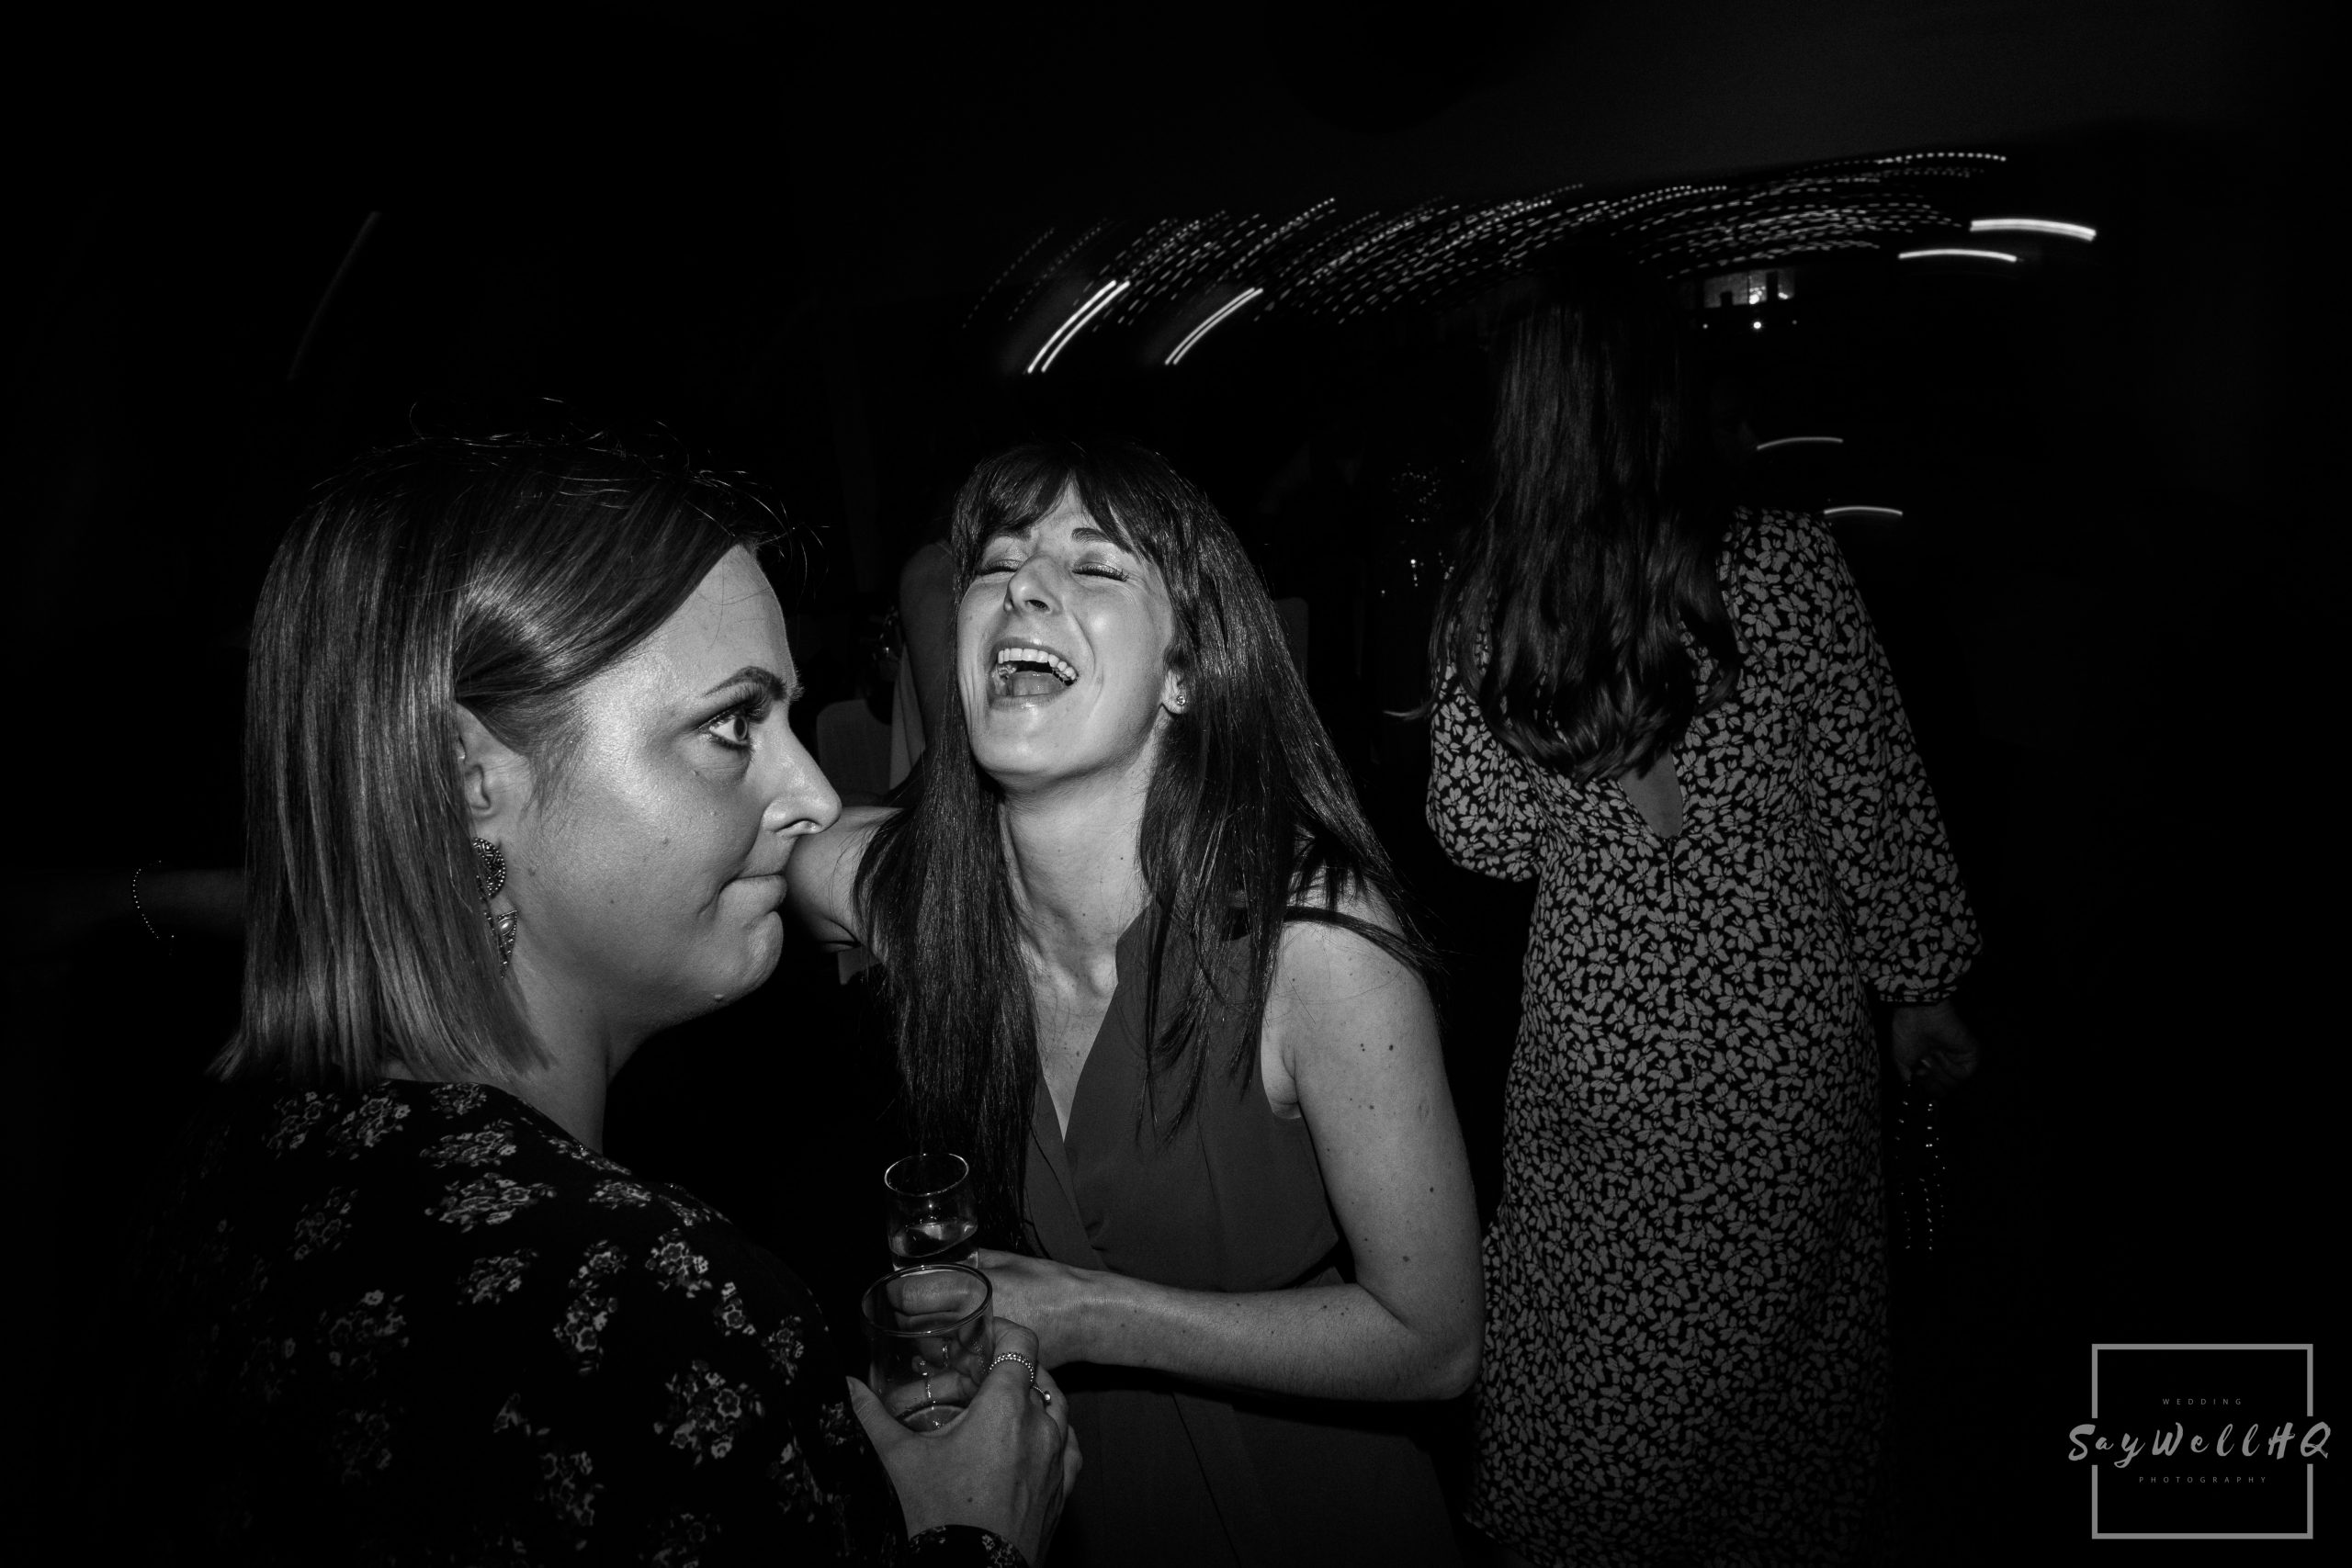 Wedding guests having fun on the dancefloor during the disco at a Goosedale wedding - Wedding Photography by goosedale wedding photographer Andy Saywell of SaywellHQ